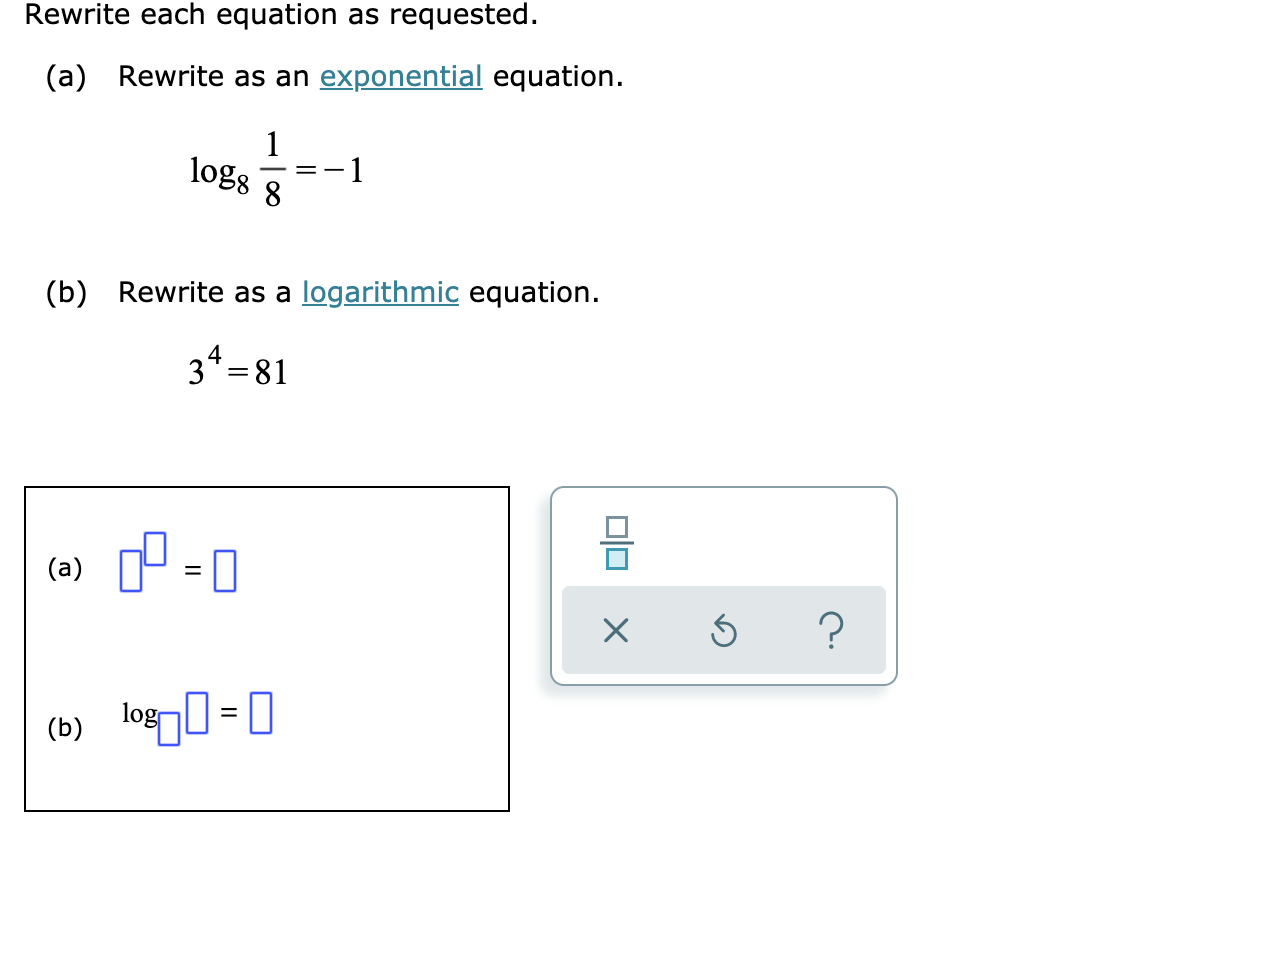 Rewrite each equation as requested. (a) Rewrite as an exponential equation. 1 log8 1 logarithmic equation (b) Rewrite as a 34 81 (a) log = || (b) X